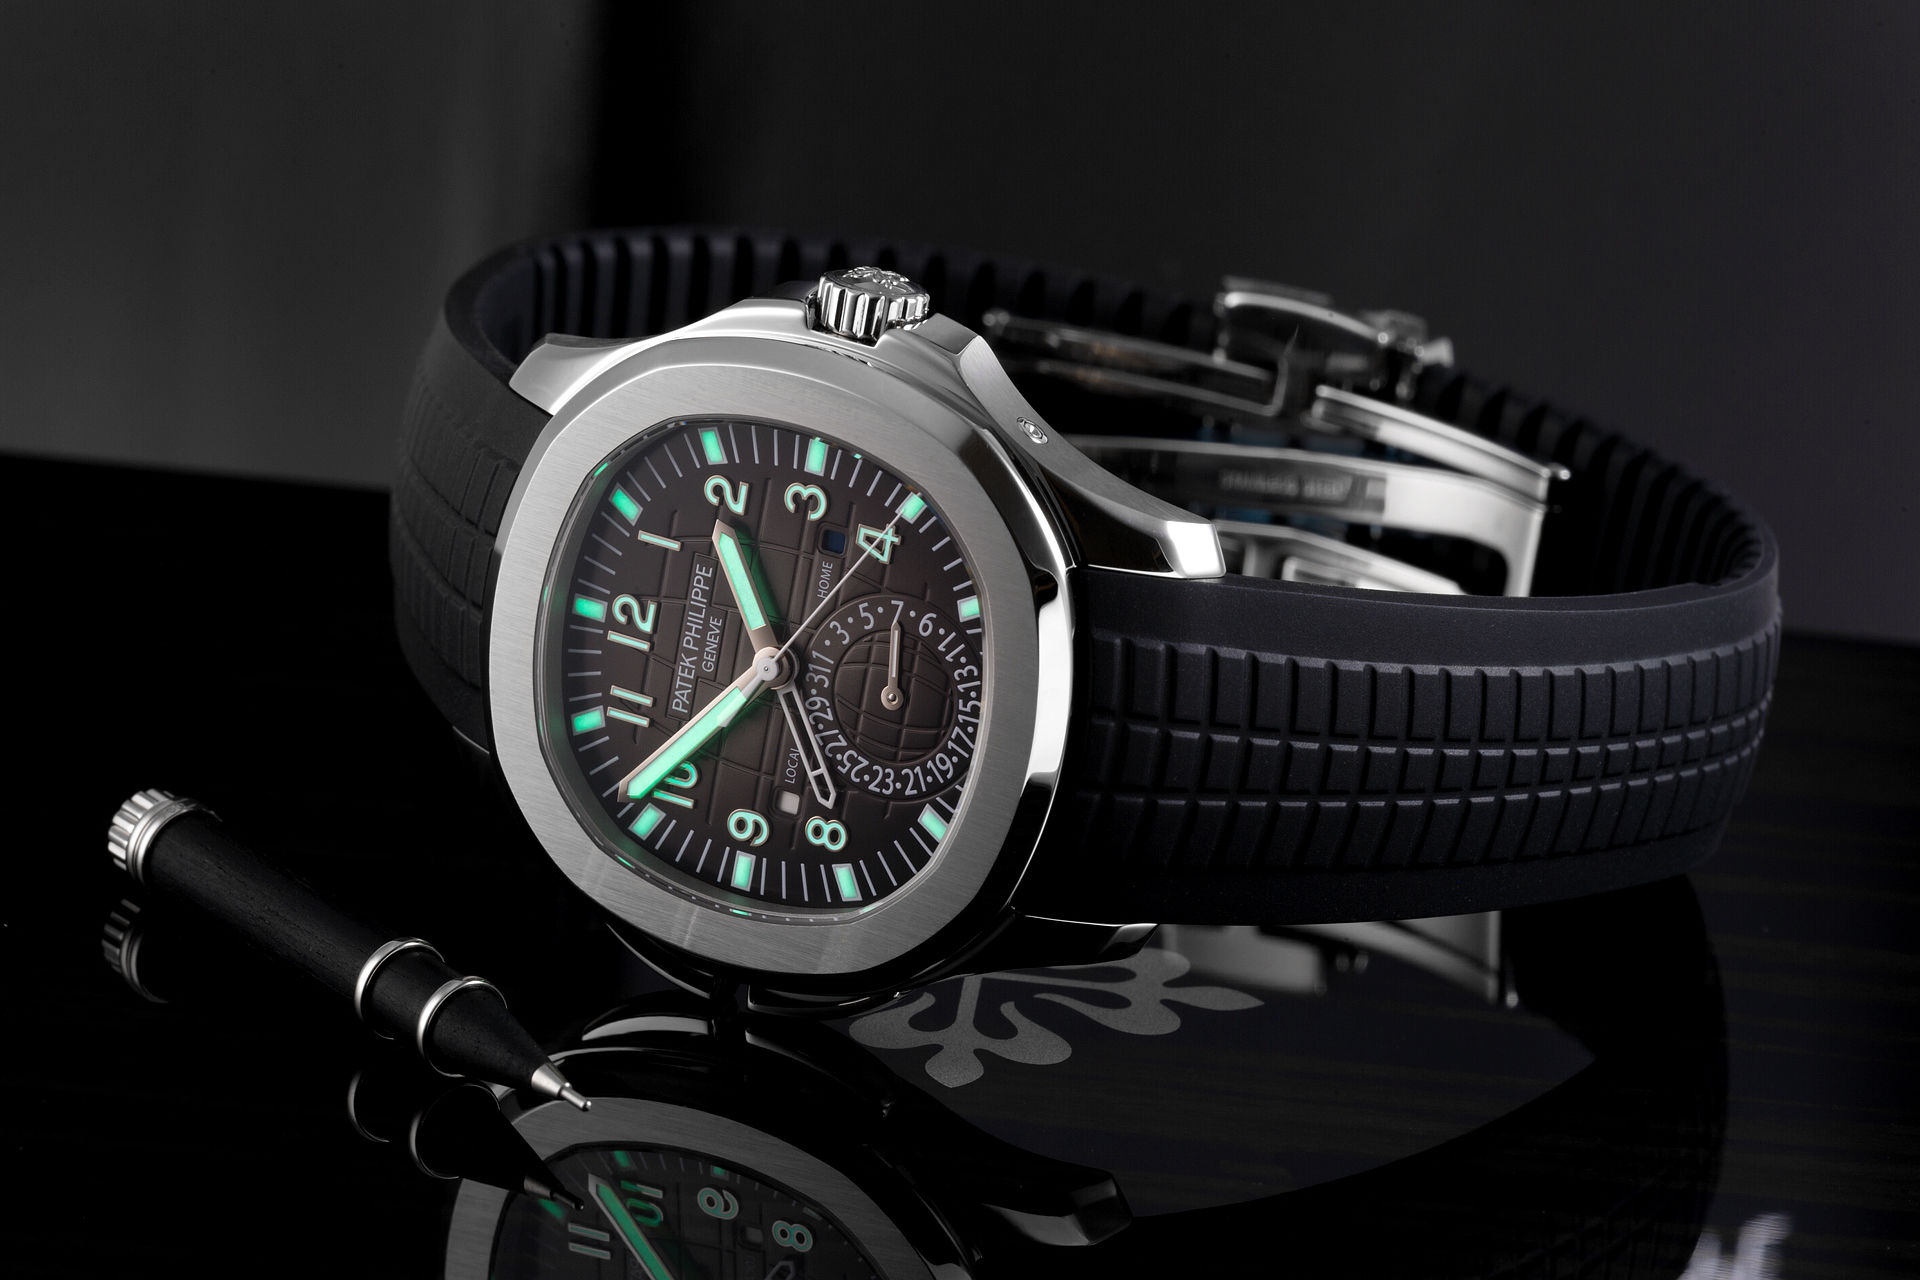 Patek Philippe Aquanaut Travel Time Watches Ref 5164a 001 Brand